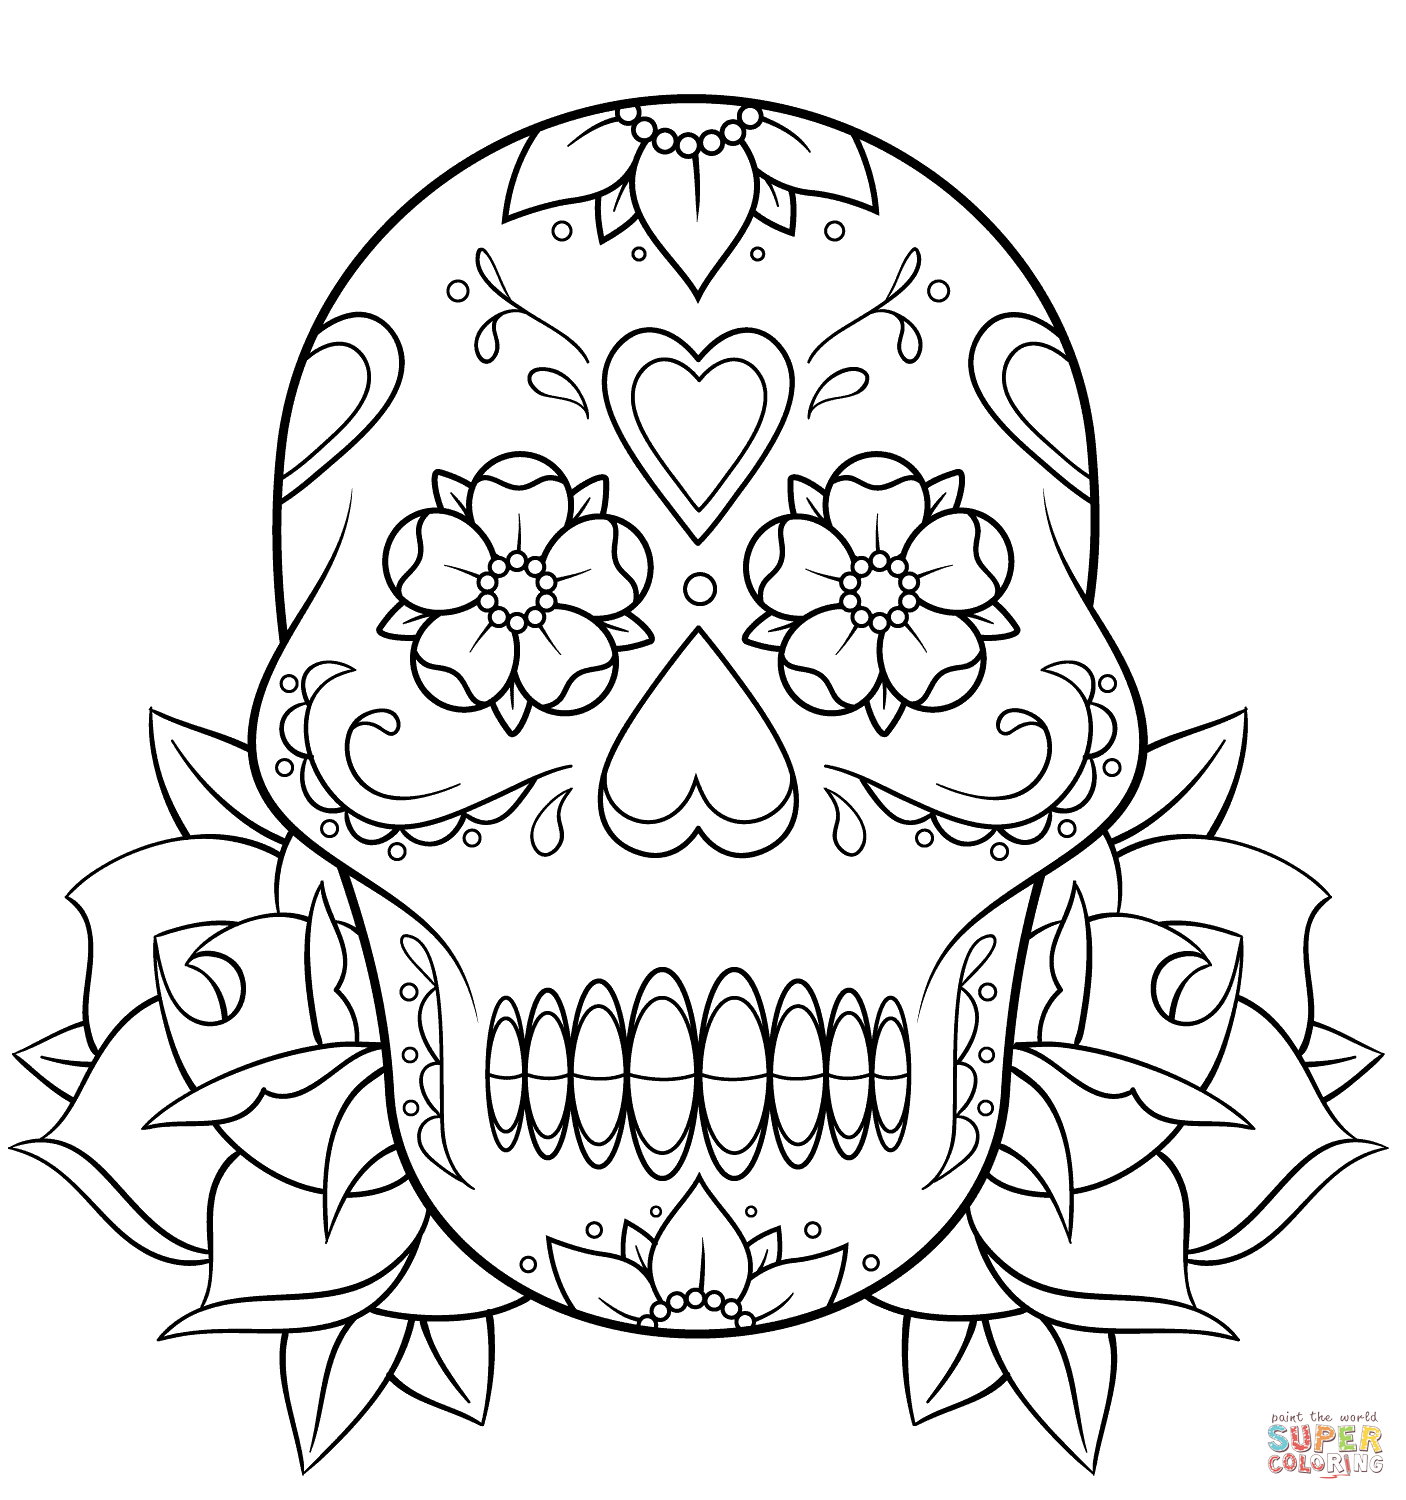 Skeleton Hand Drawing Coloring Coloring Pages